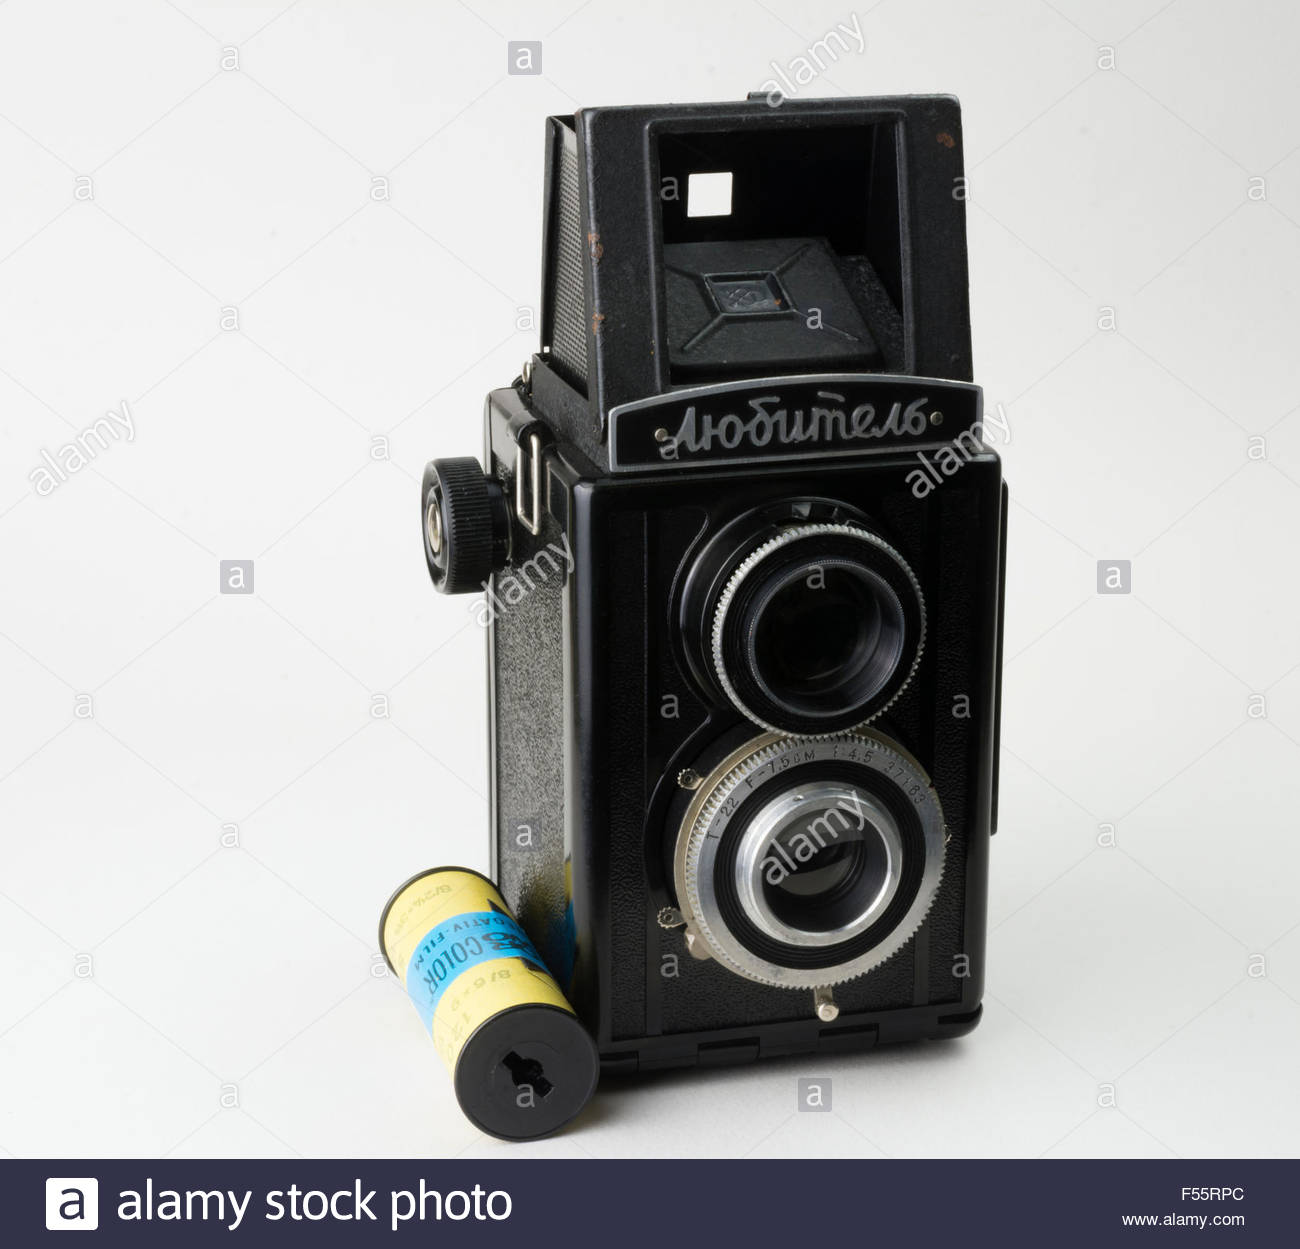 Lubitel Roll Film Camera from Soviet Russia with a Roll of ORWO Color Film - Stock Image